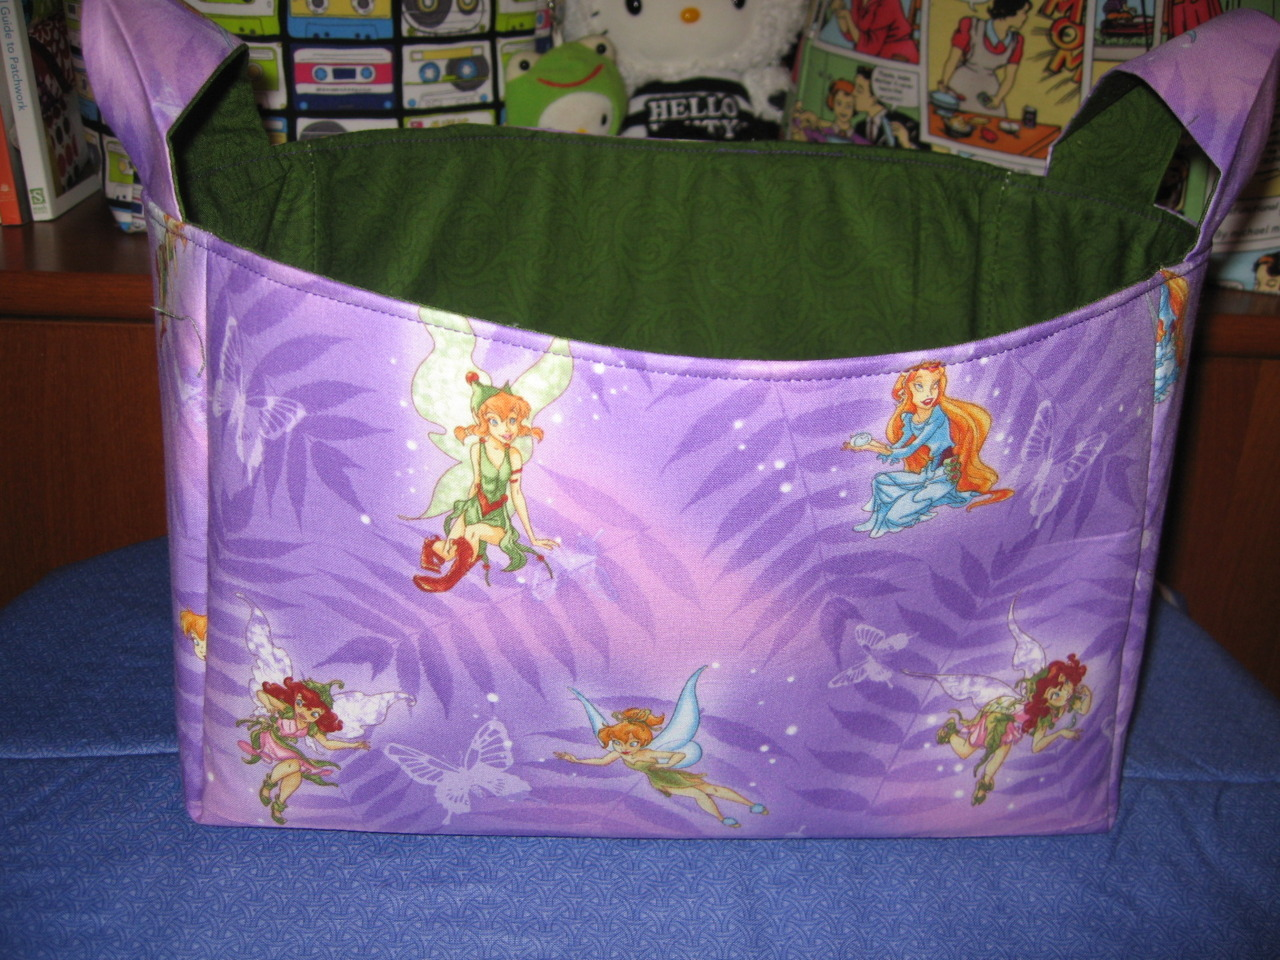 Tricky Pixies basket, $18. Tinkerbell and her friends are here to stay! Makes a wonderful gift basket or perfect for simply adding some whimsy to any room in your home! Store toys, towels, toiletries, loose wires, books, dvds/blurays/video games, remote controls, hair accessories, and more.  Basket is about 9.5 x 6.5 x 7.  To learn more e-mail me at CourtasticCreations@gmail.com, like Courtastic Creations on Facebook, or visit  www.courtasticcreations.blogspot.com